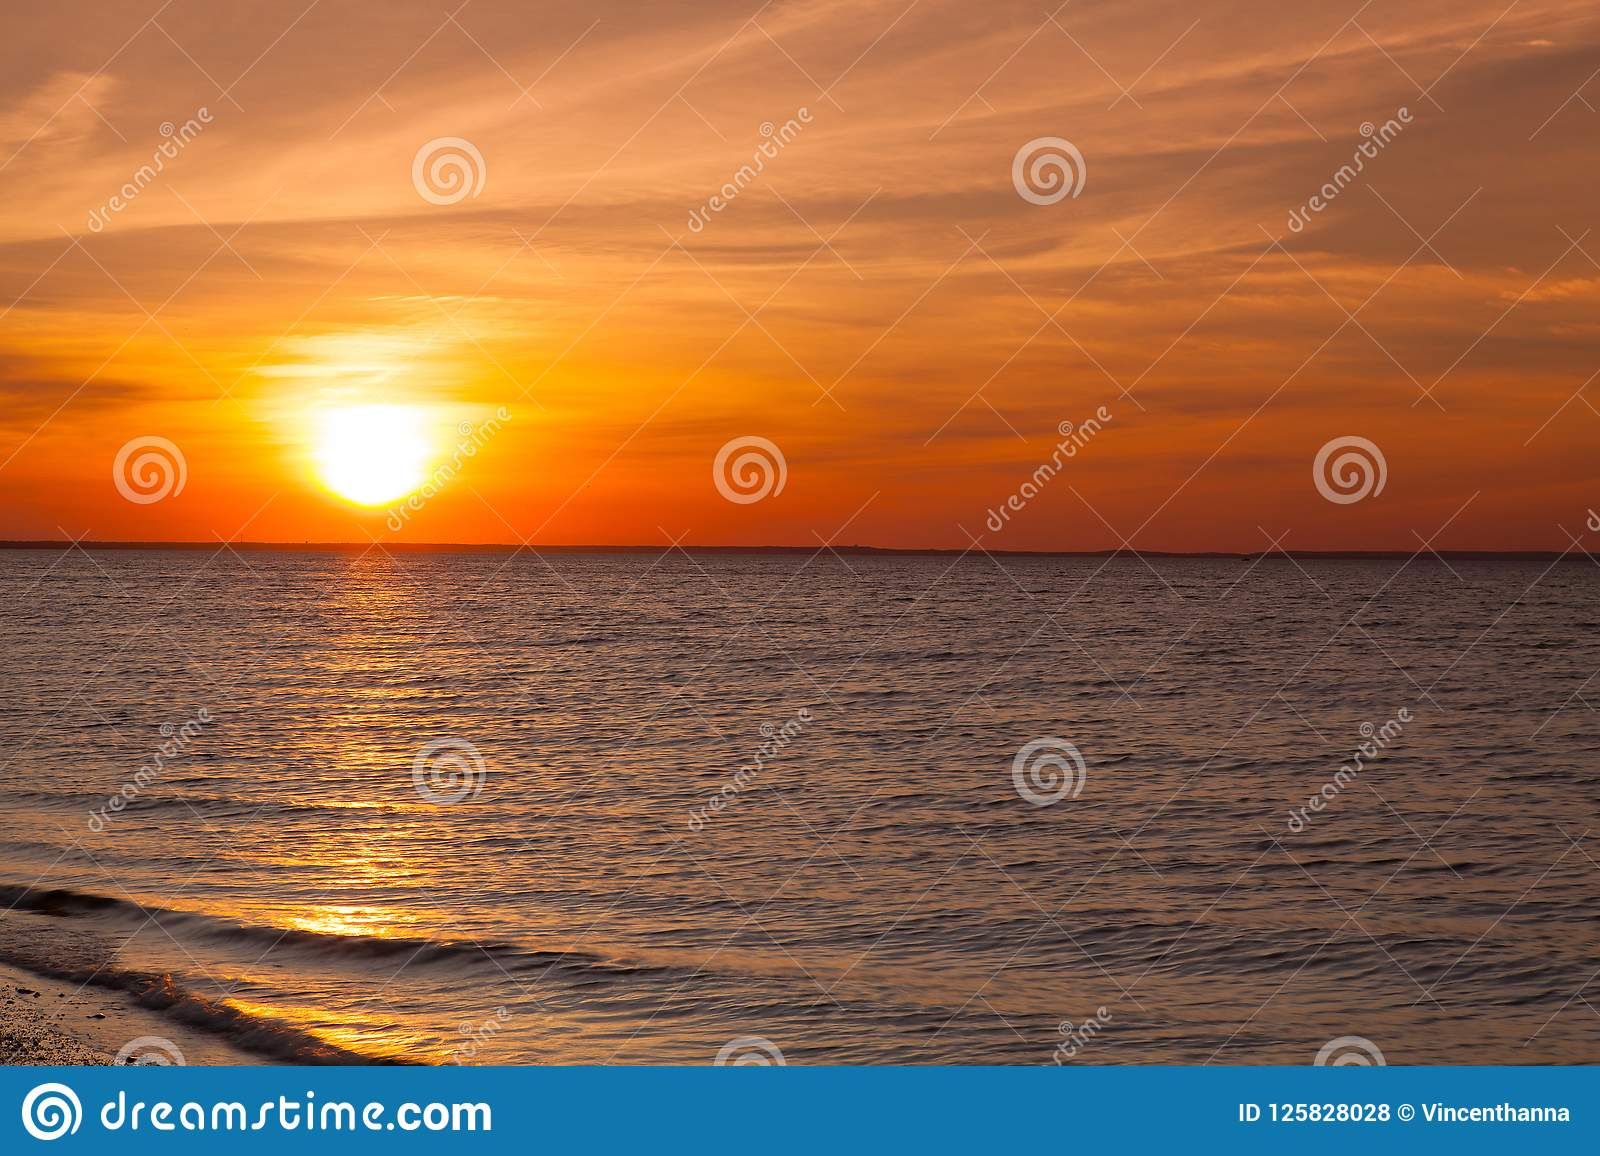 Dramatic Sunset On The Beach, Cape Cod, USA Stock Photo